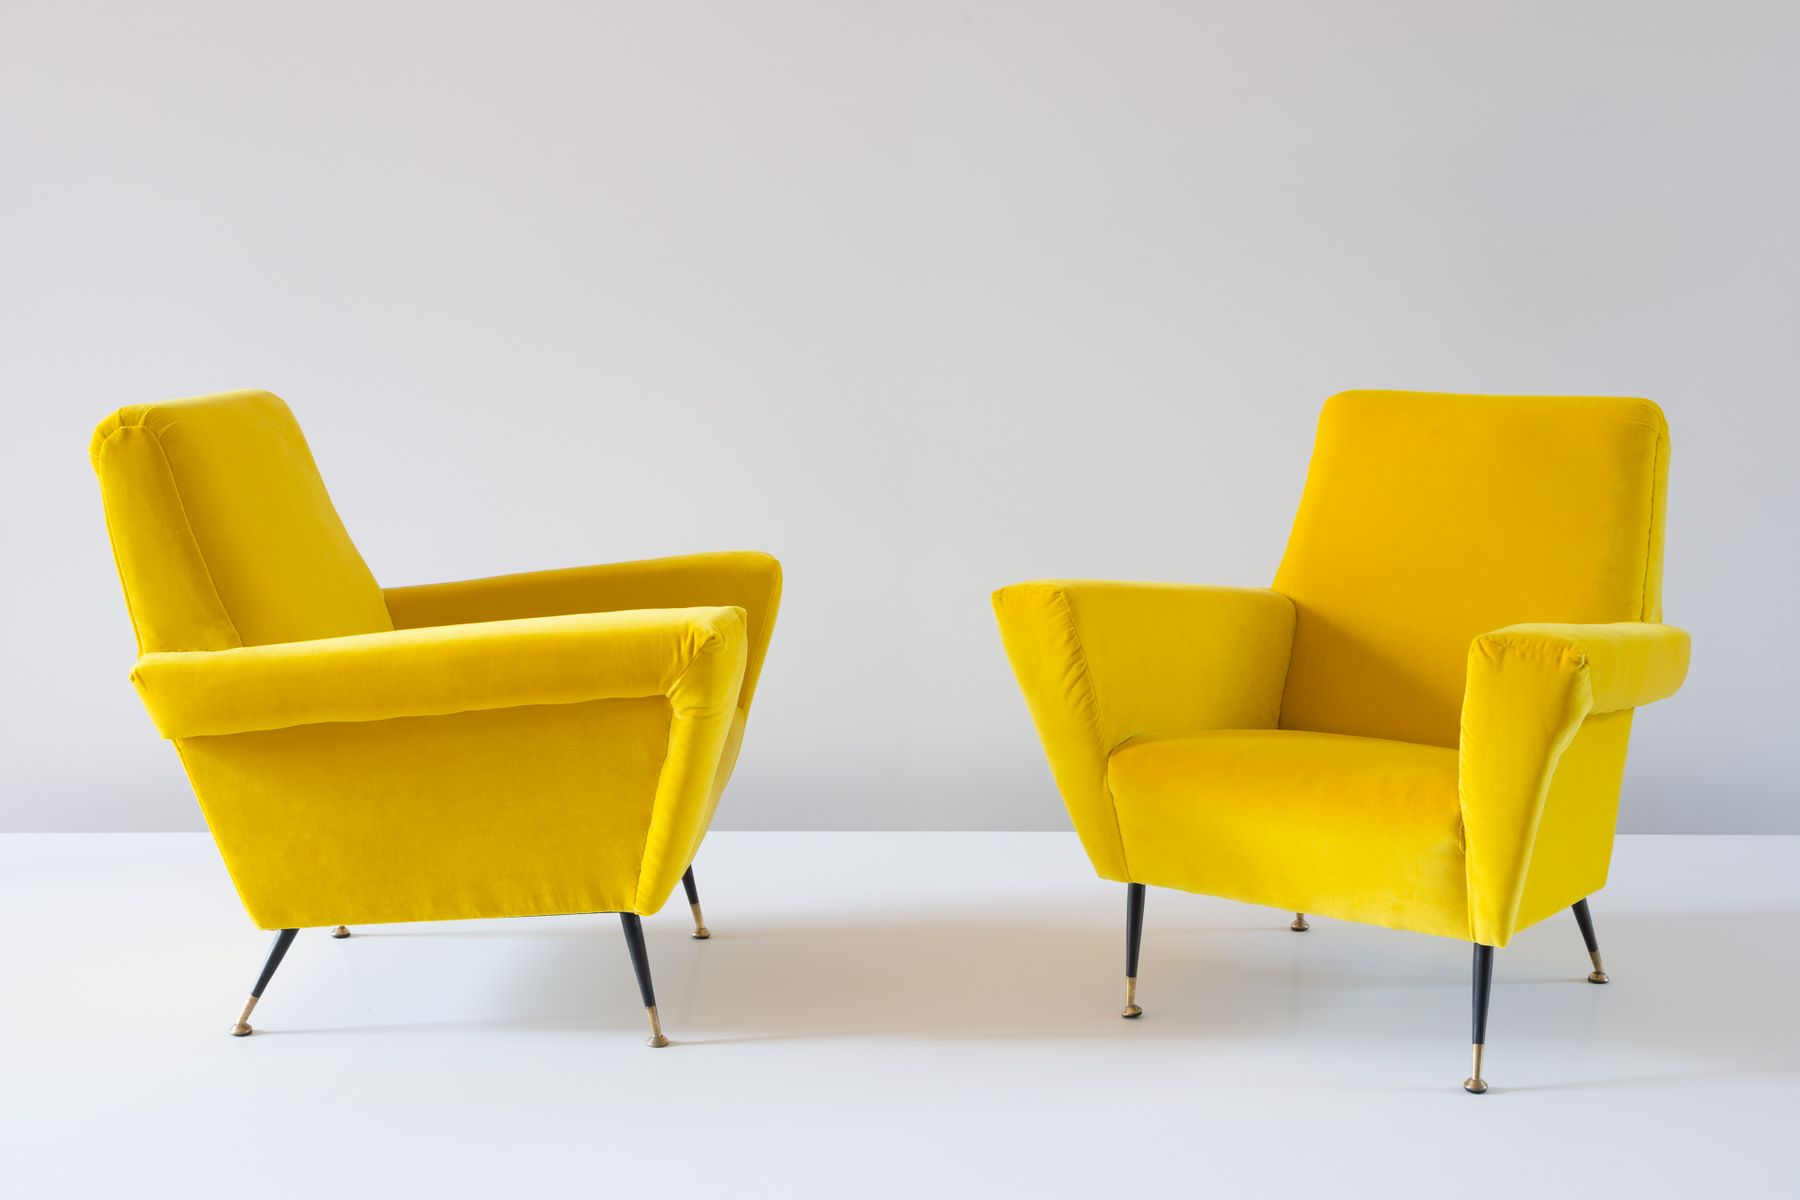 fauteuils vintage en velours jaune italie 1950s set de 2 en vente sur pamono. Black Bedroom Furniture Sets. Home Design Ideas